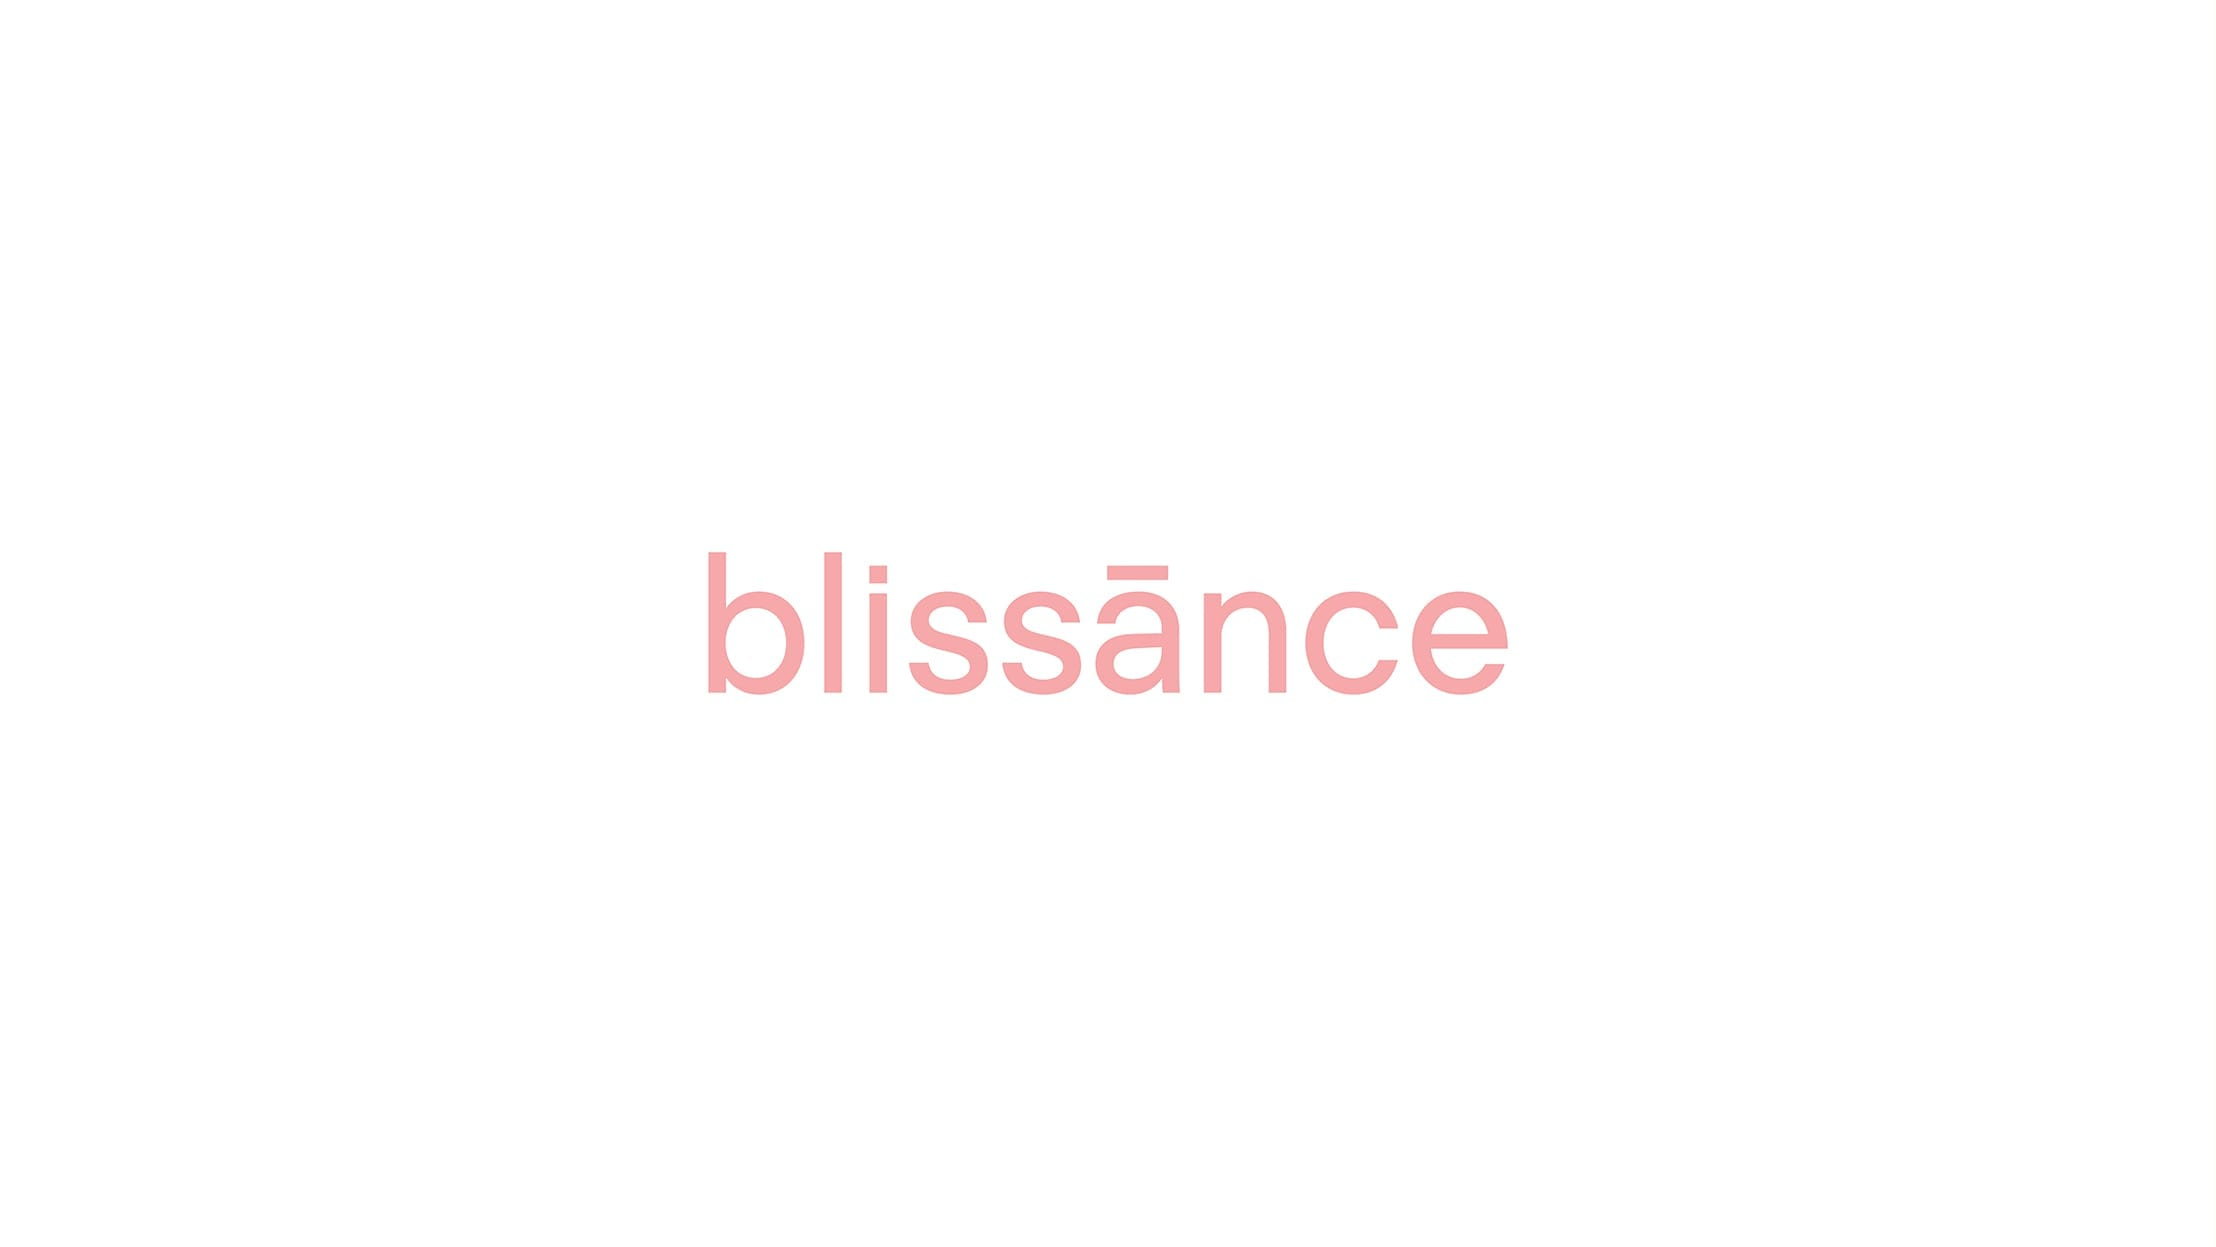 The Blissance Method